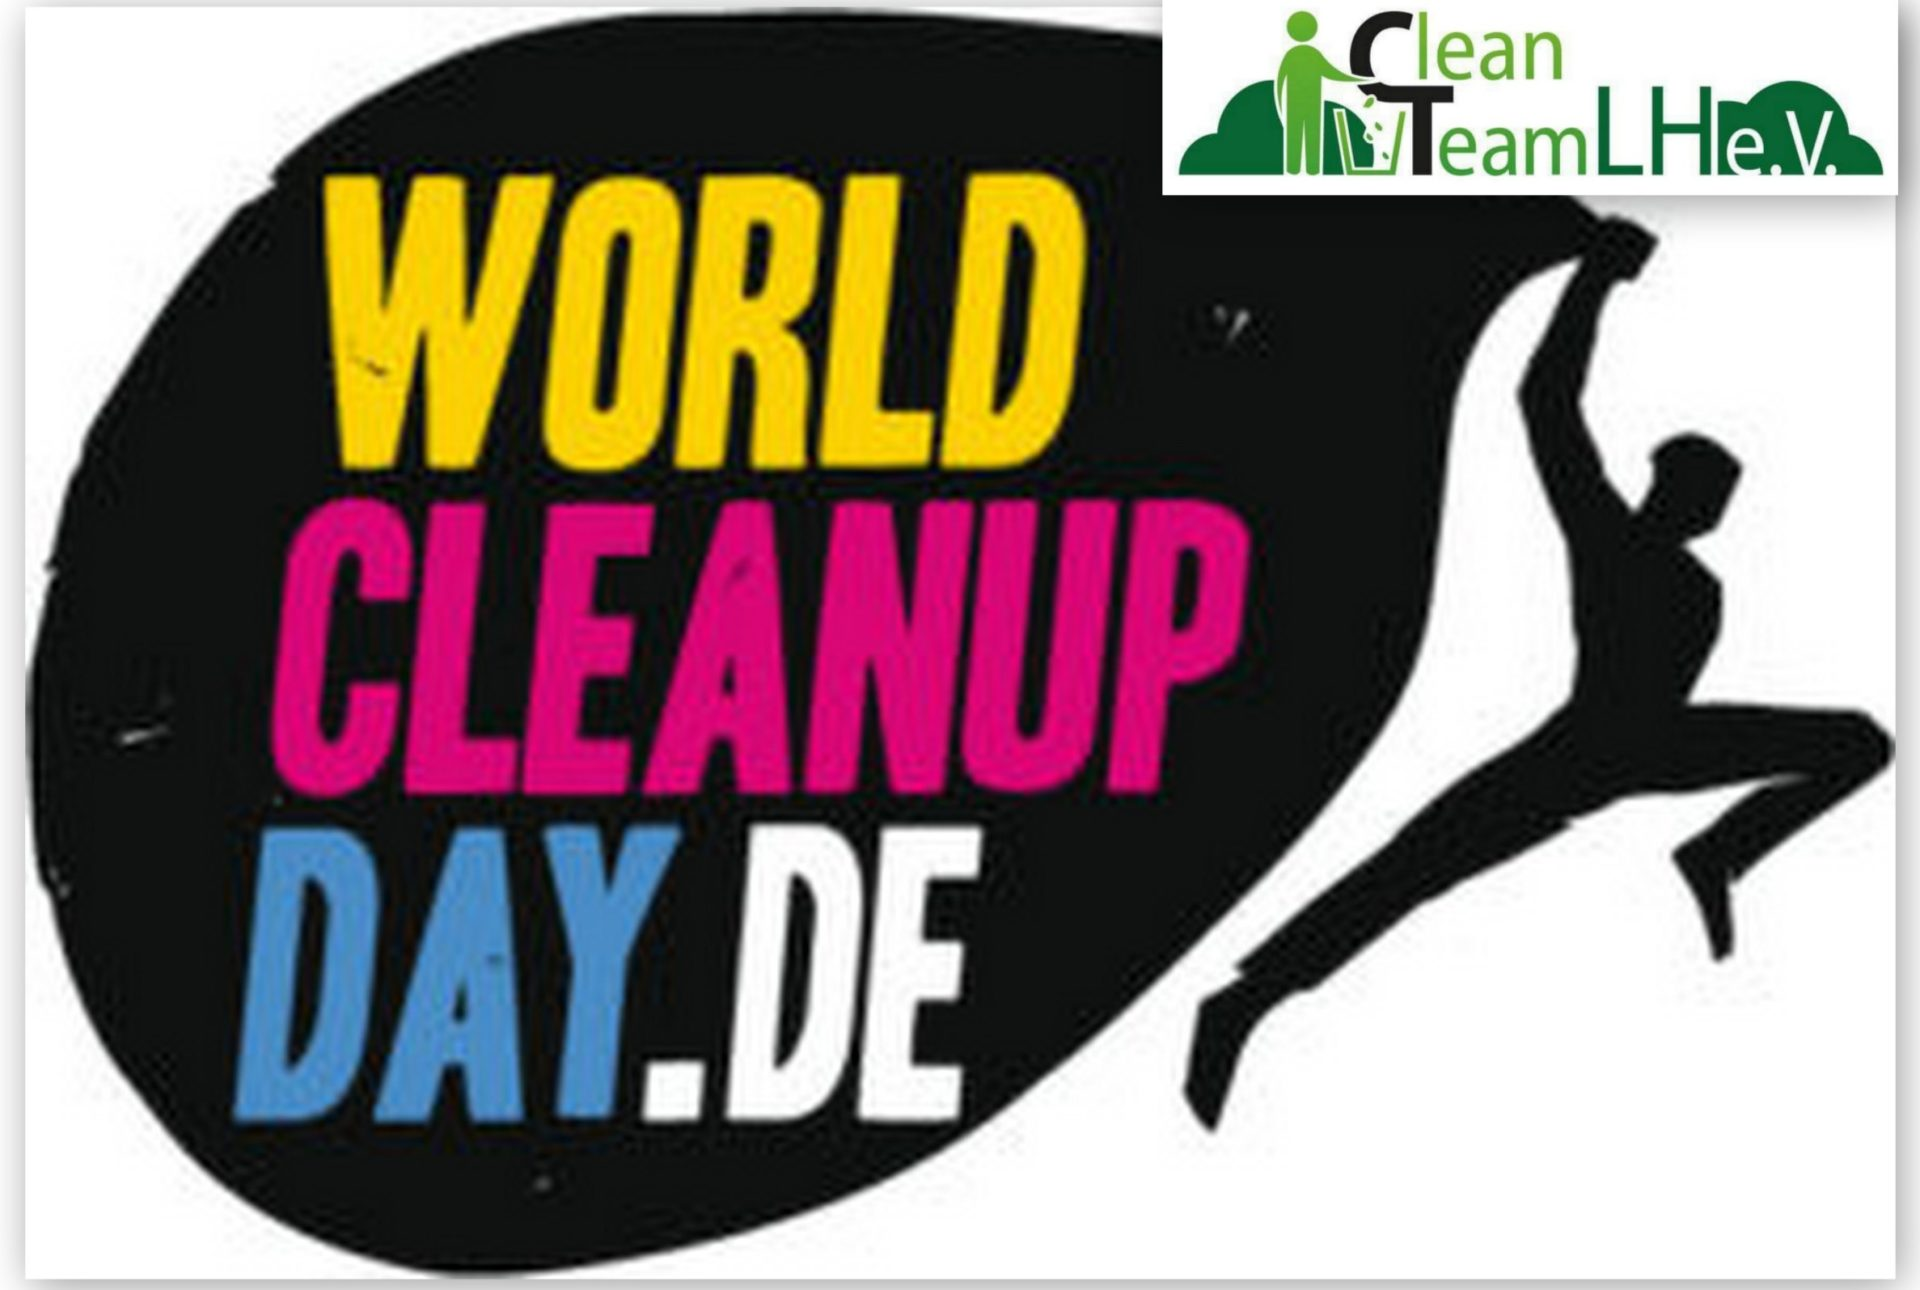 World Cleanup Day/Clean-Team-LH e.V. (Nordrhein-Westfalen)